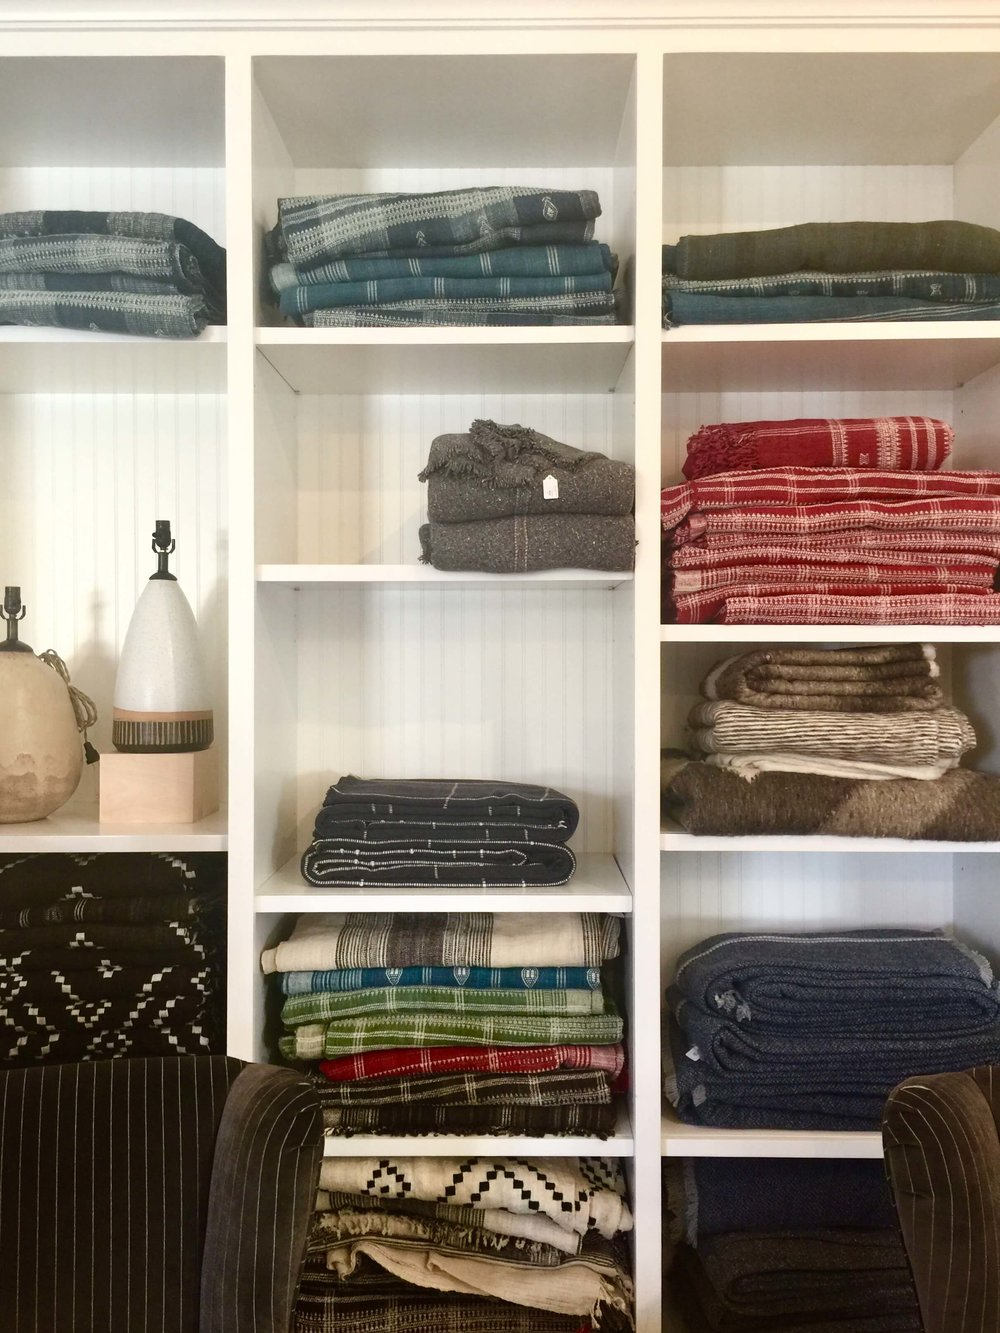 Blankets and throws in colorful textiles are stacked in open shelving in Hollywood At Home, Los Angeles home furnishings shop #blankets